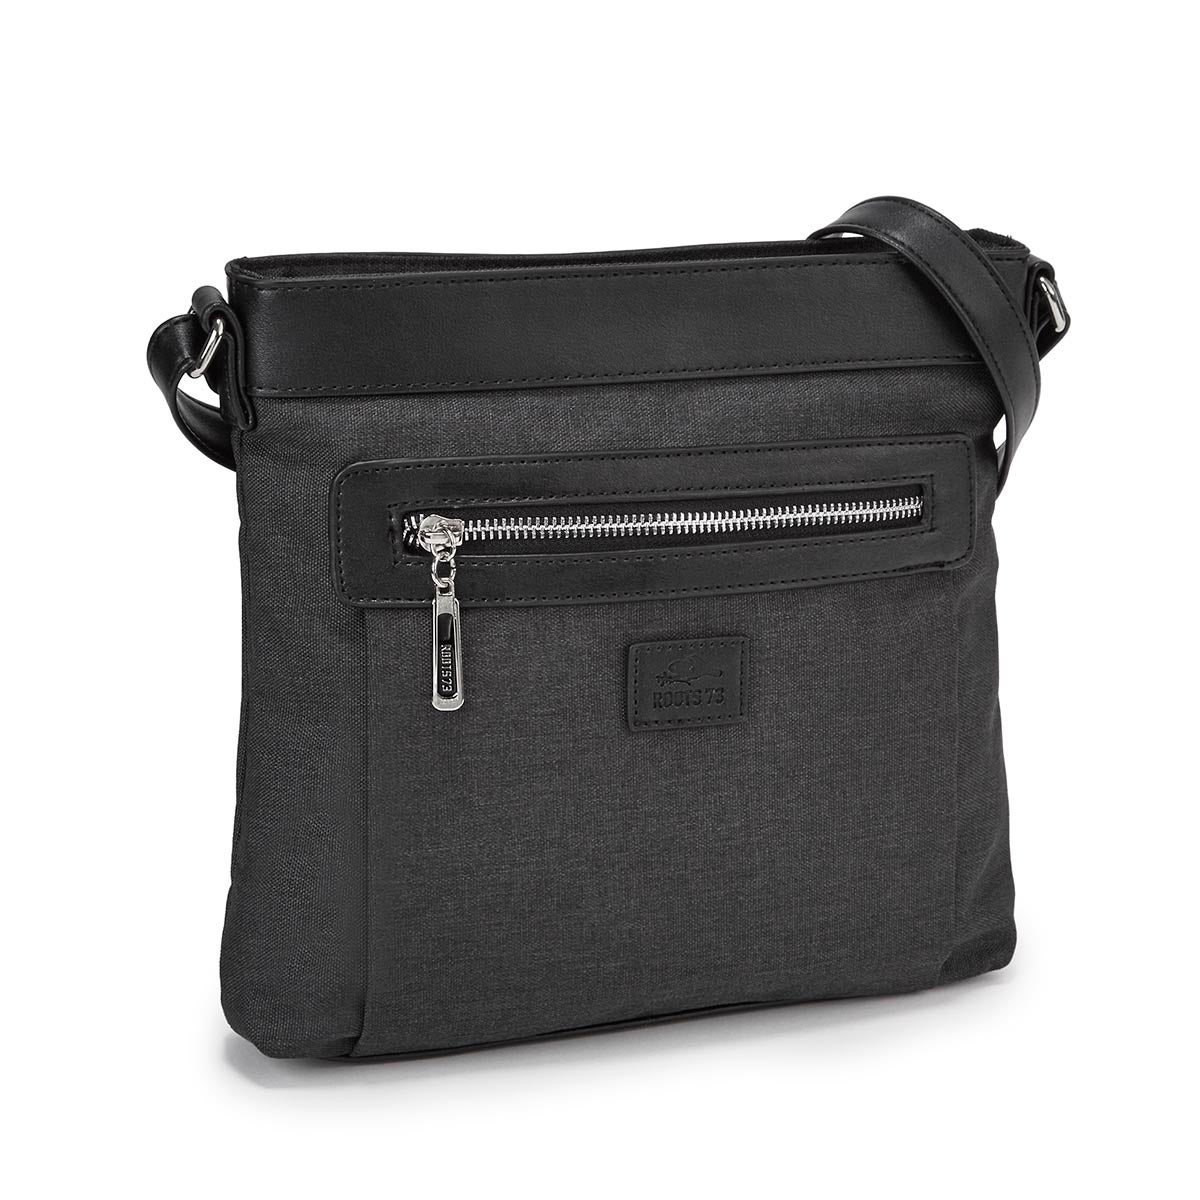 LdsRoots73 black north south cross body